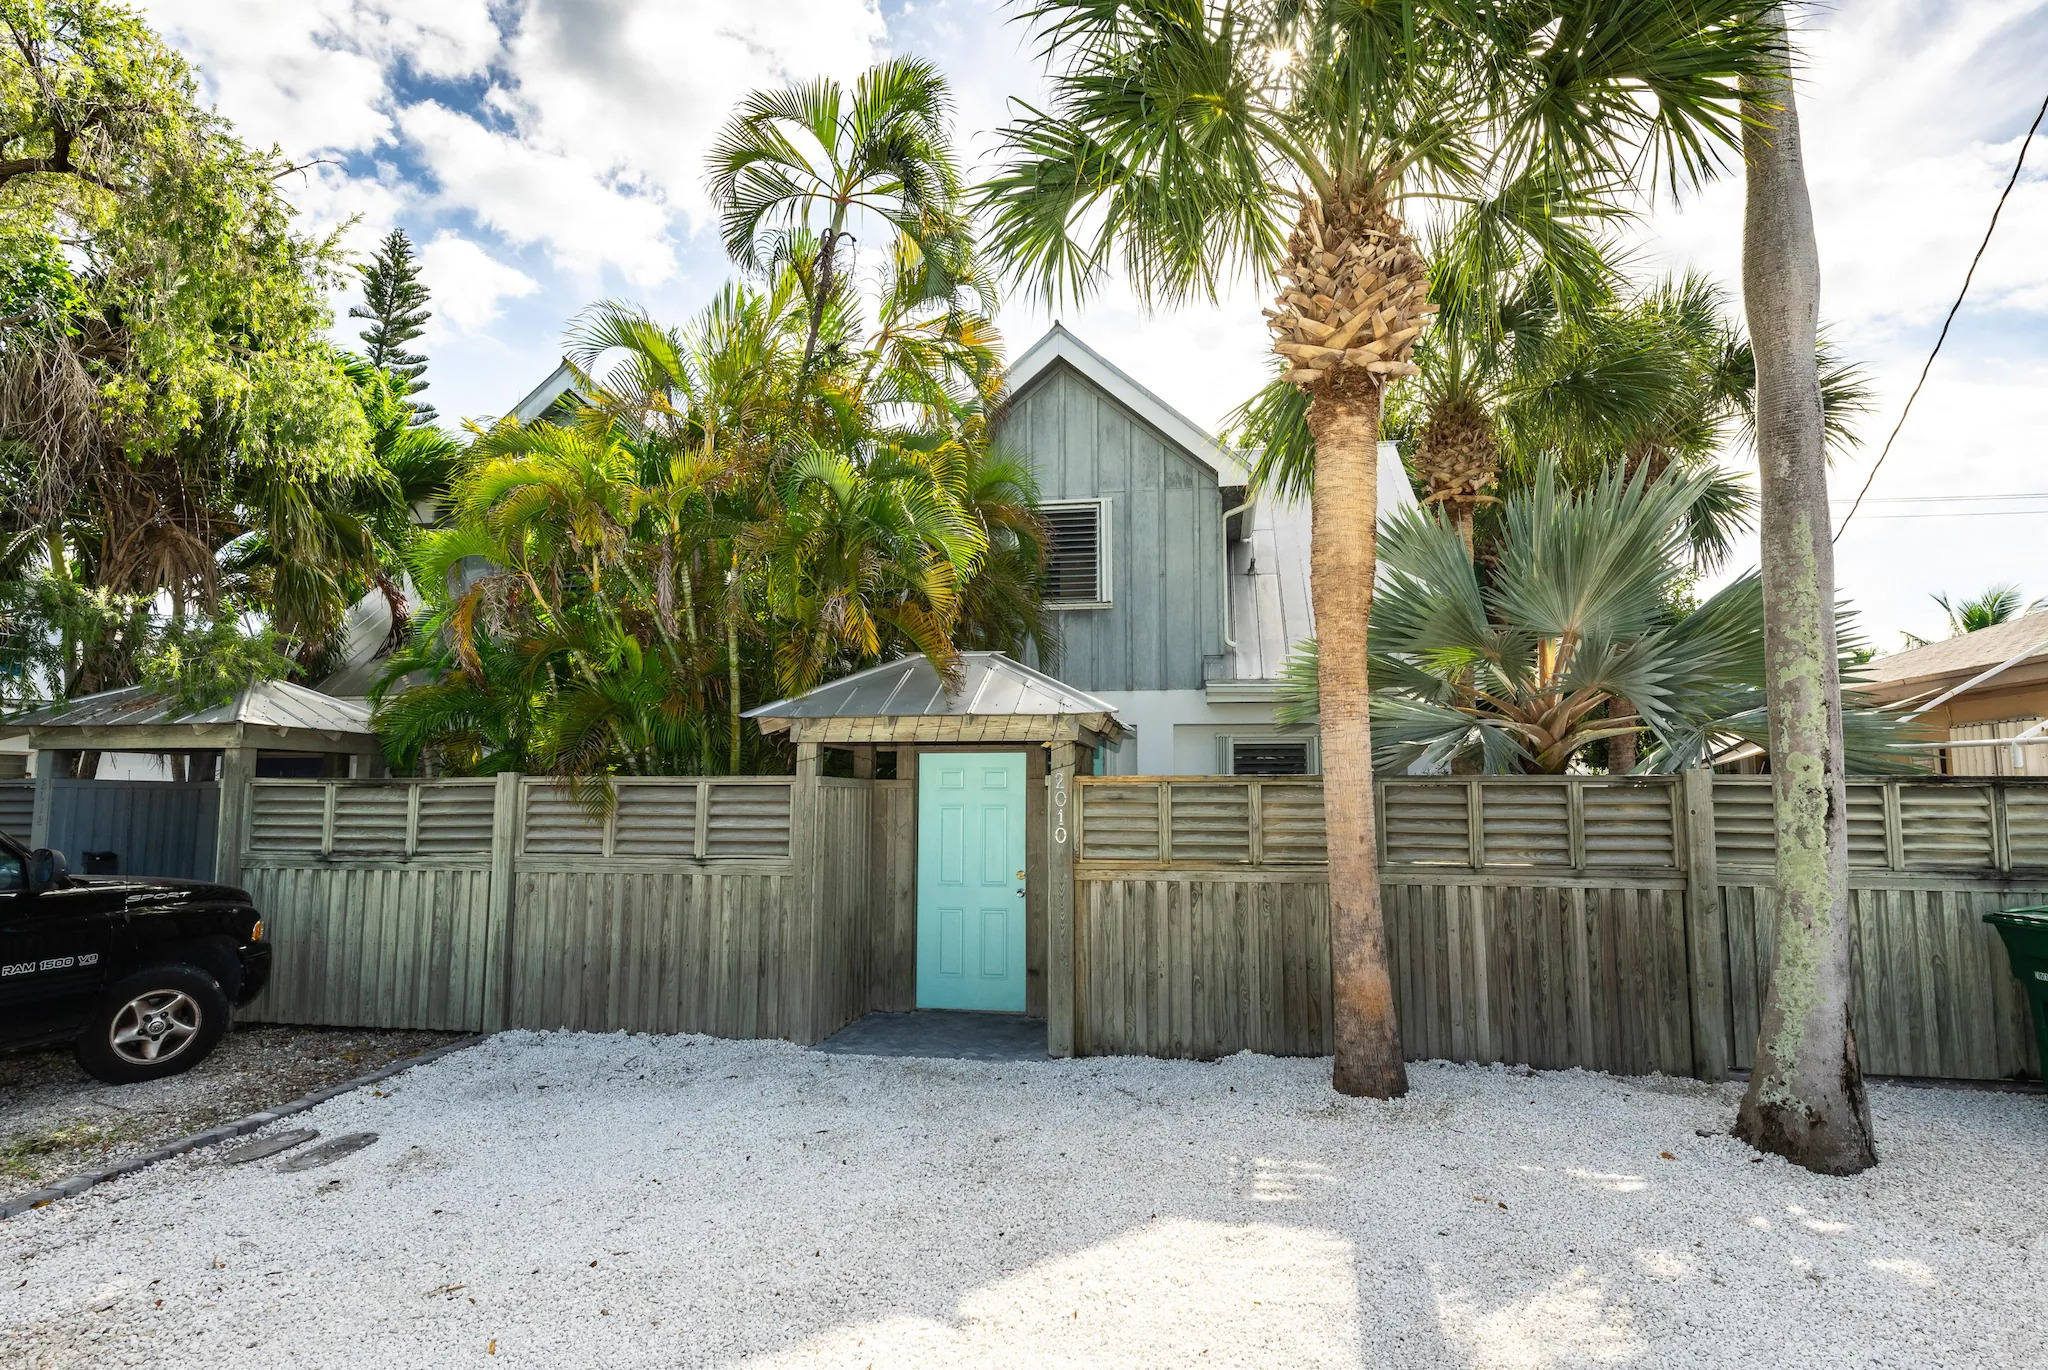 Barefoot Bungalow in Key West, Florida